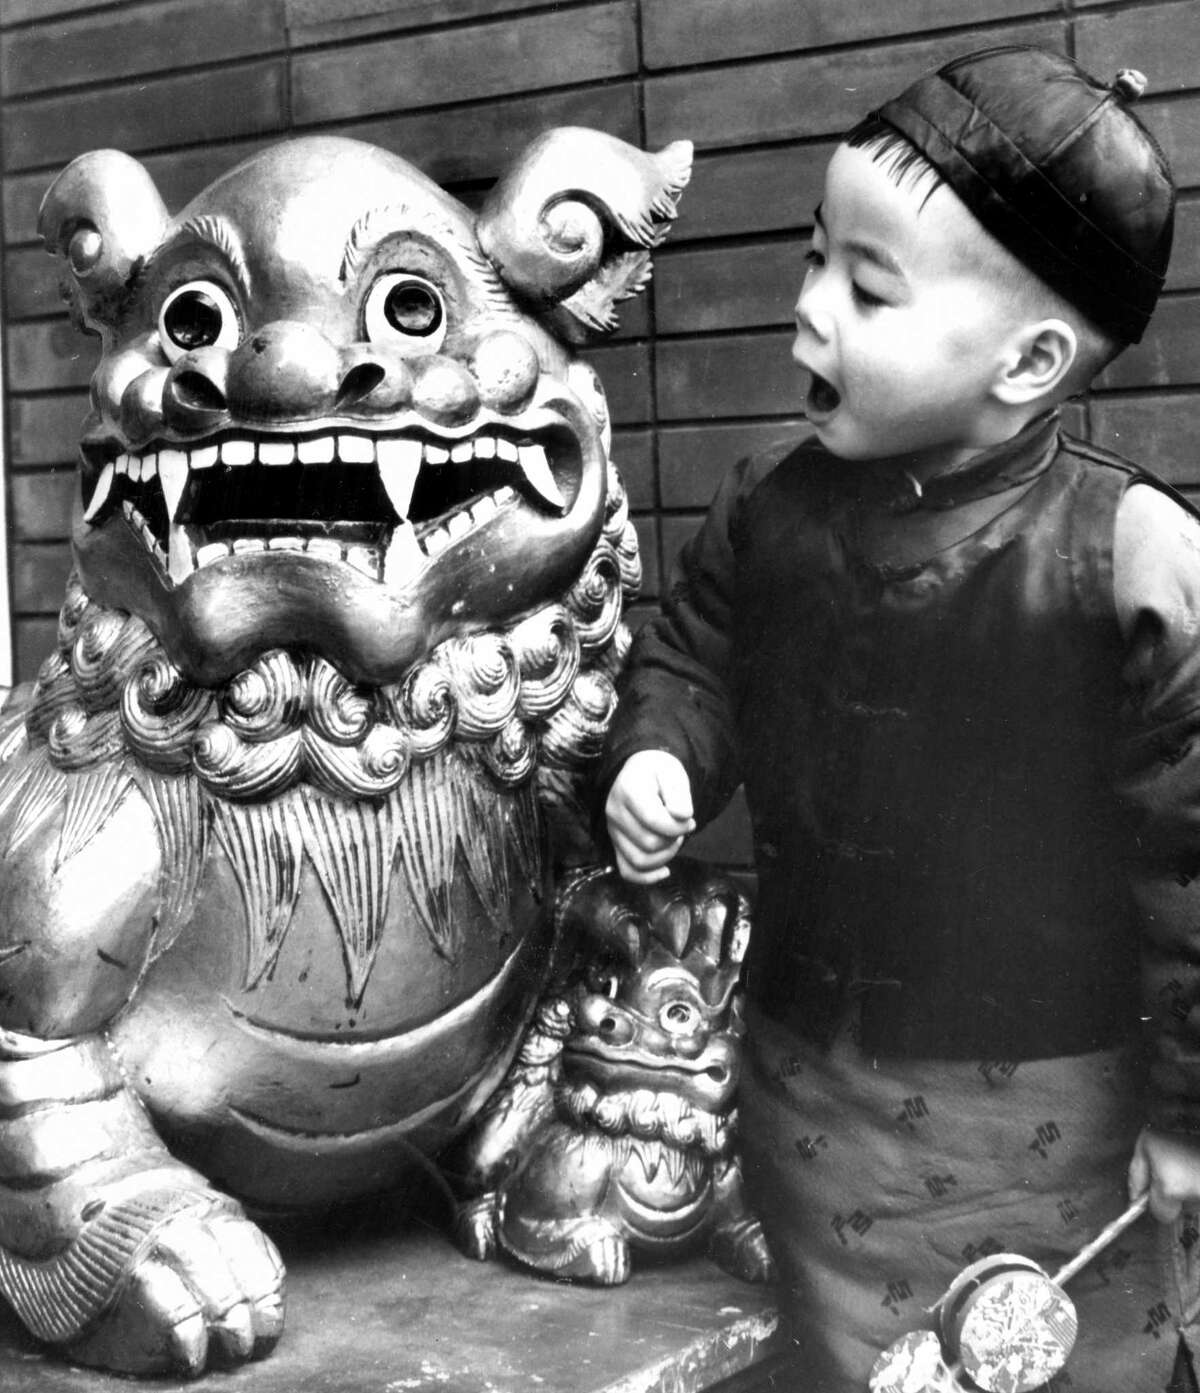 A child standing next to a lion in Chinatown is ready to celebrate the Chinese New Year in 1975. The Chinese won the right to use fireworks in the parade as part of their religion in 1908.